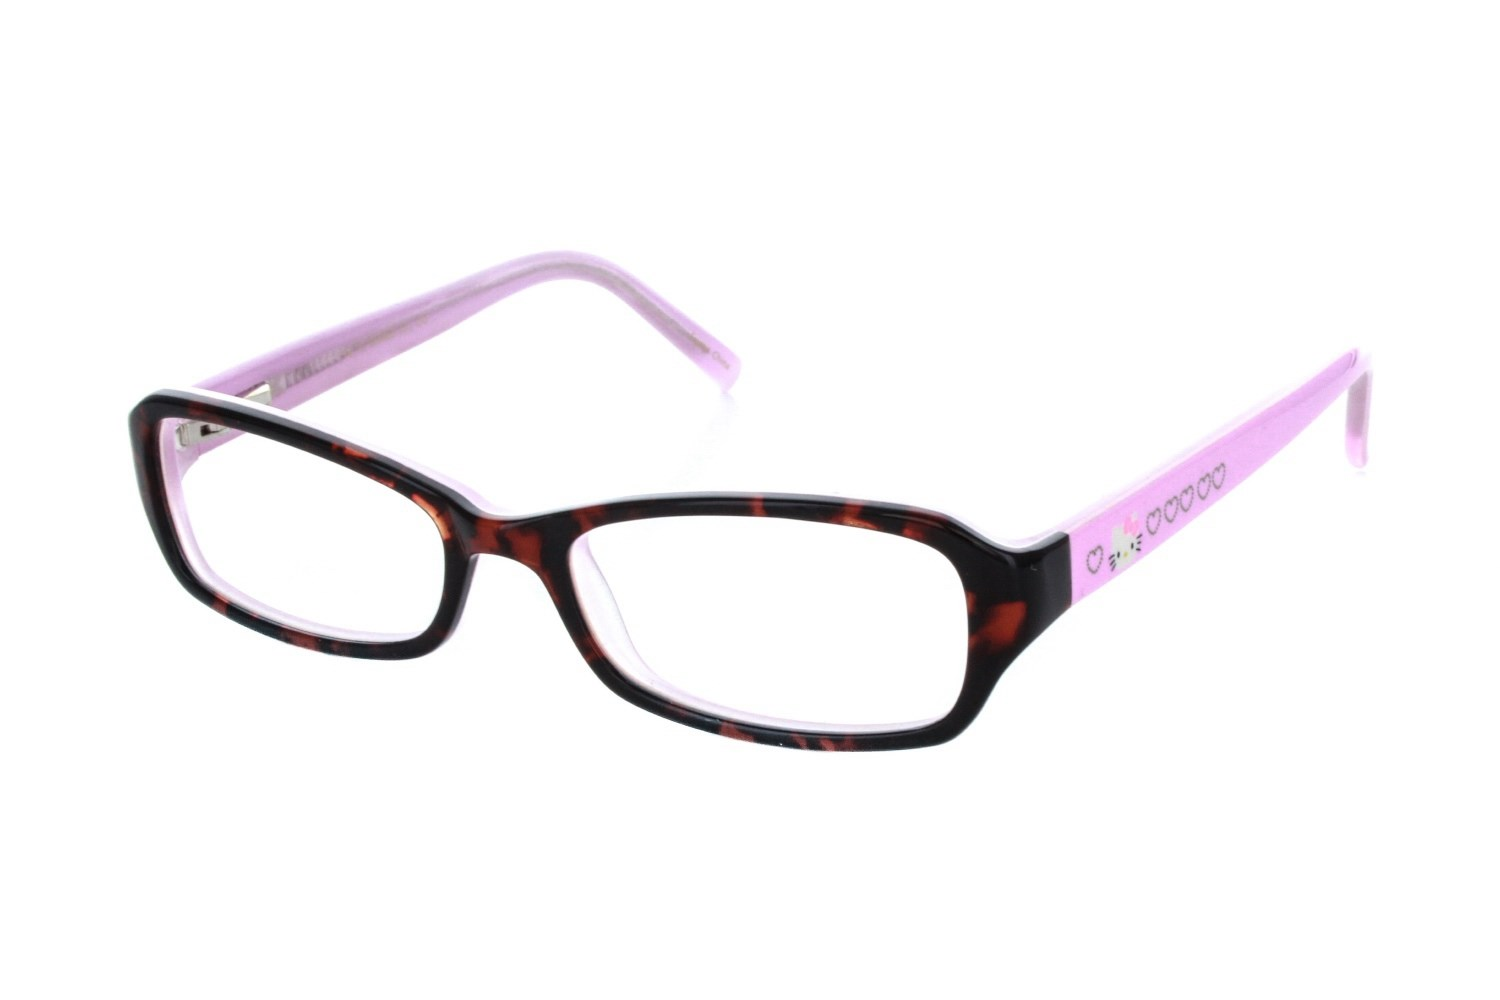 f727a74c2e60 Eyeglasses - Glasses Eyewear glasses and contact lenses superstore